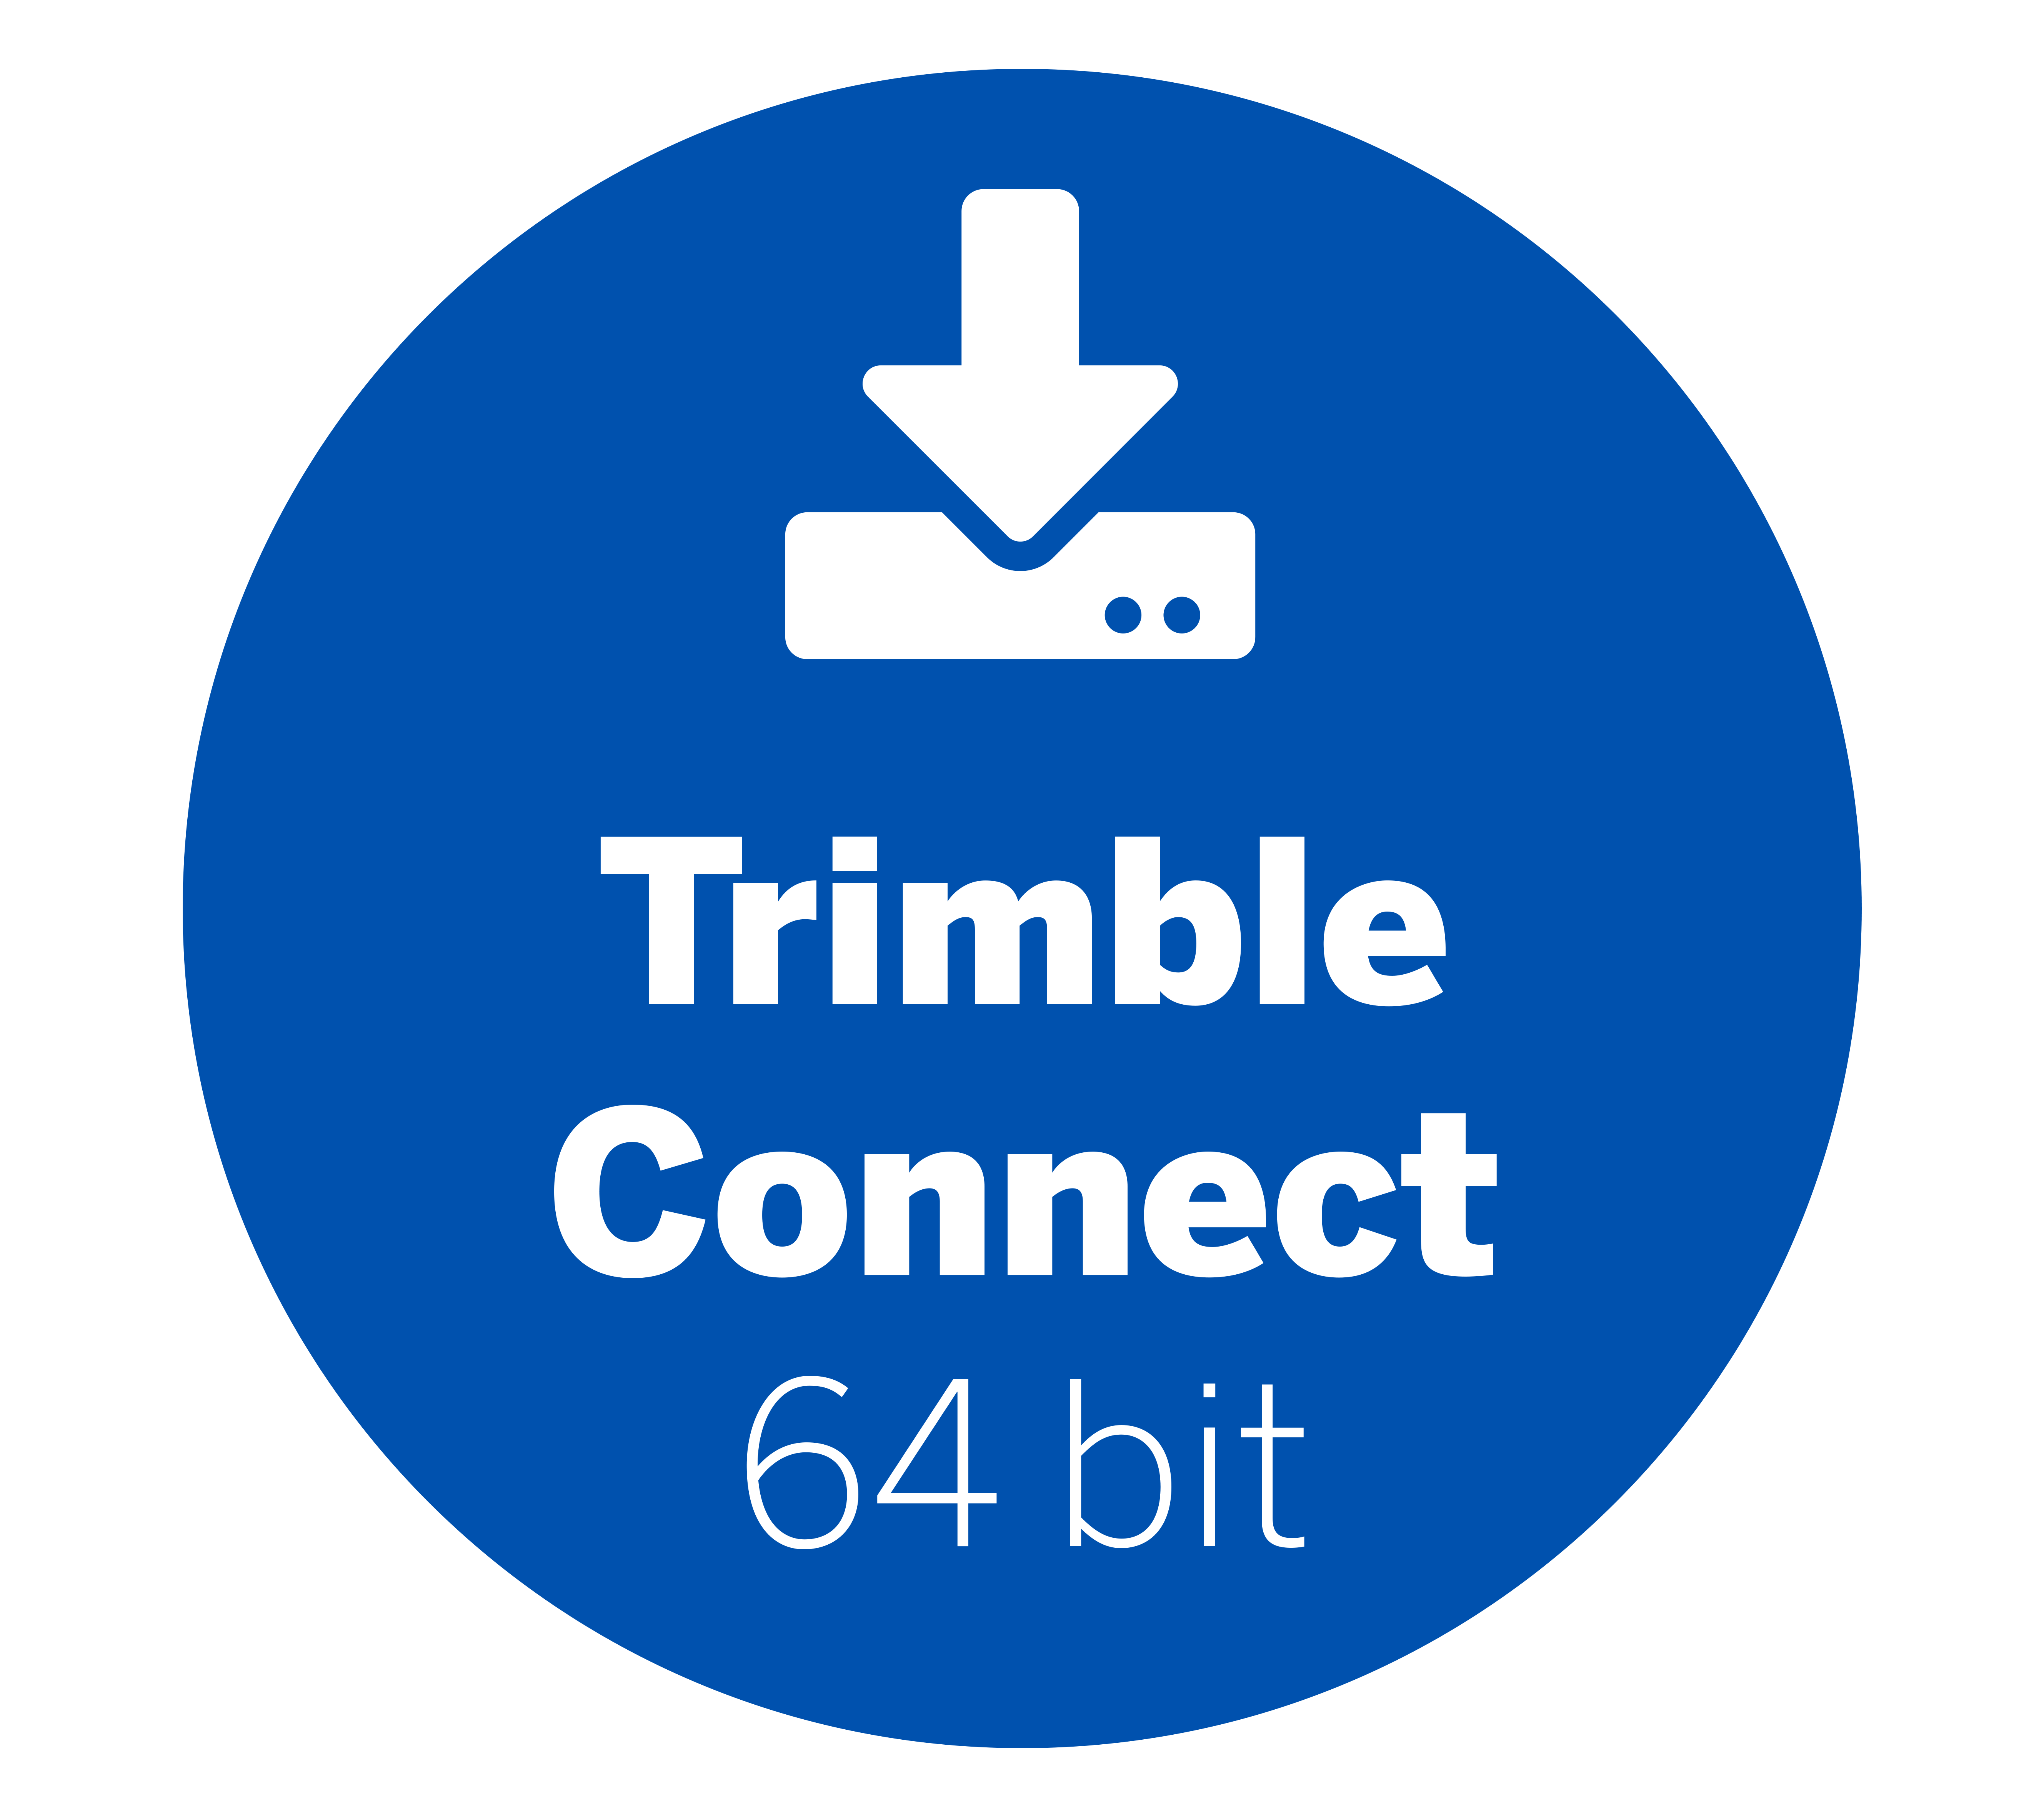 Download Trimble Connect 64bit